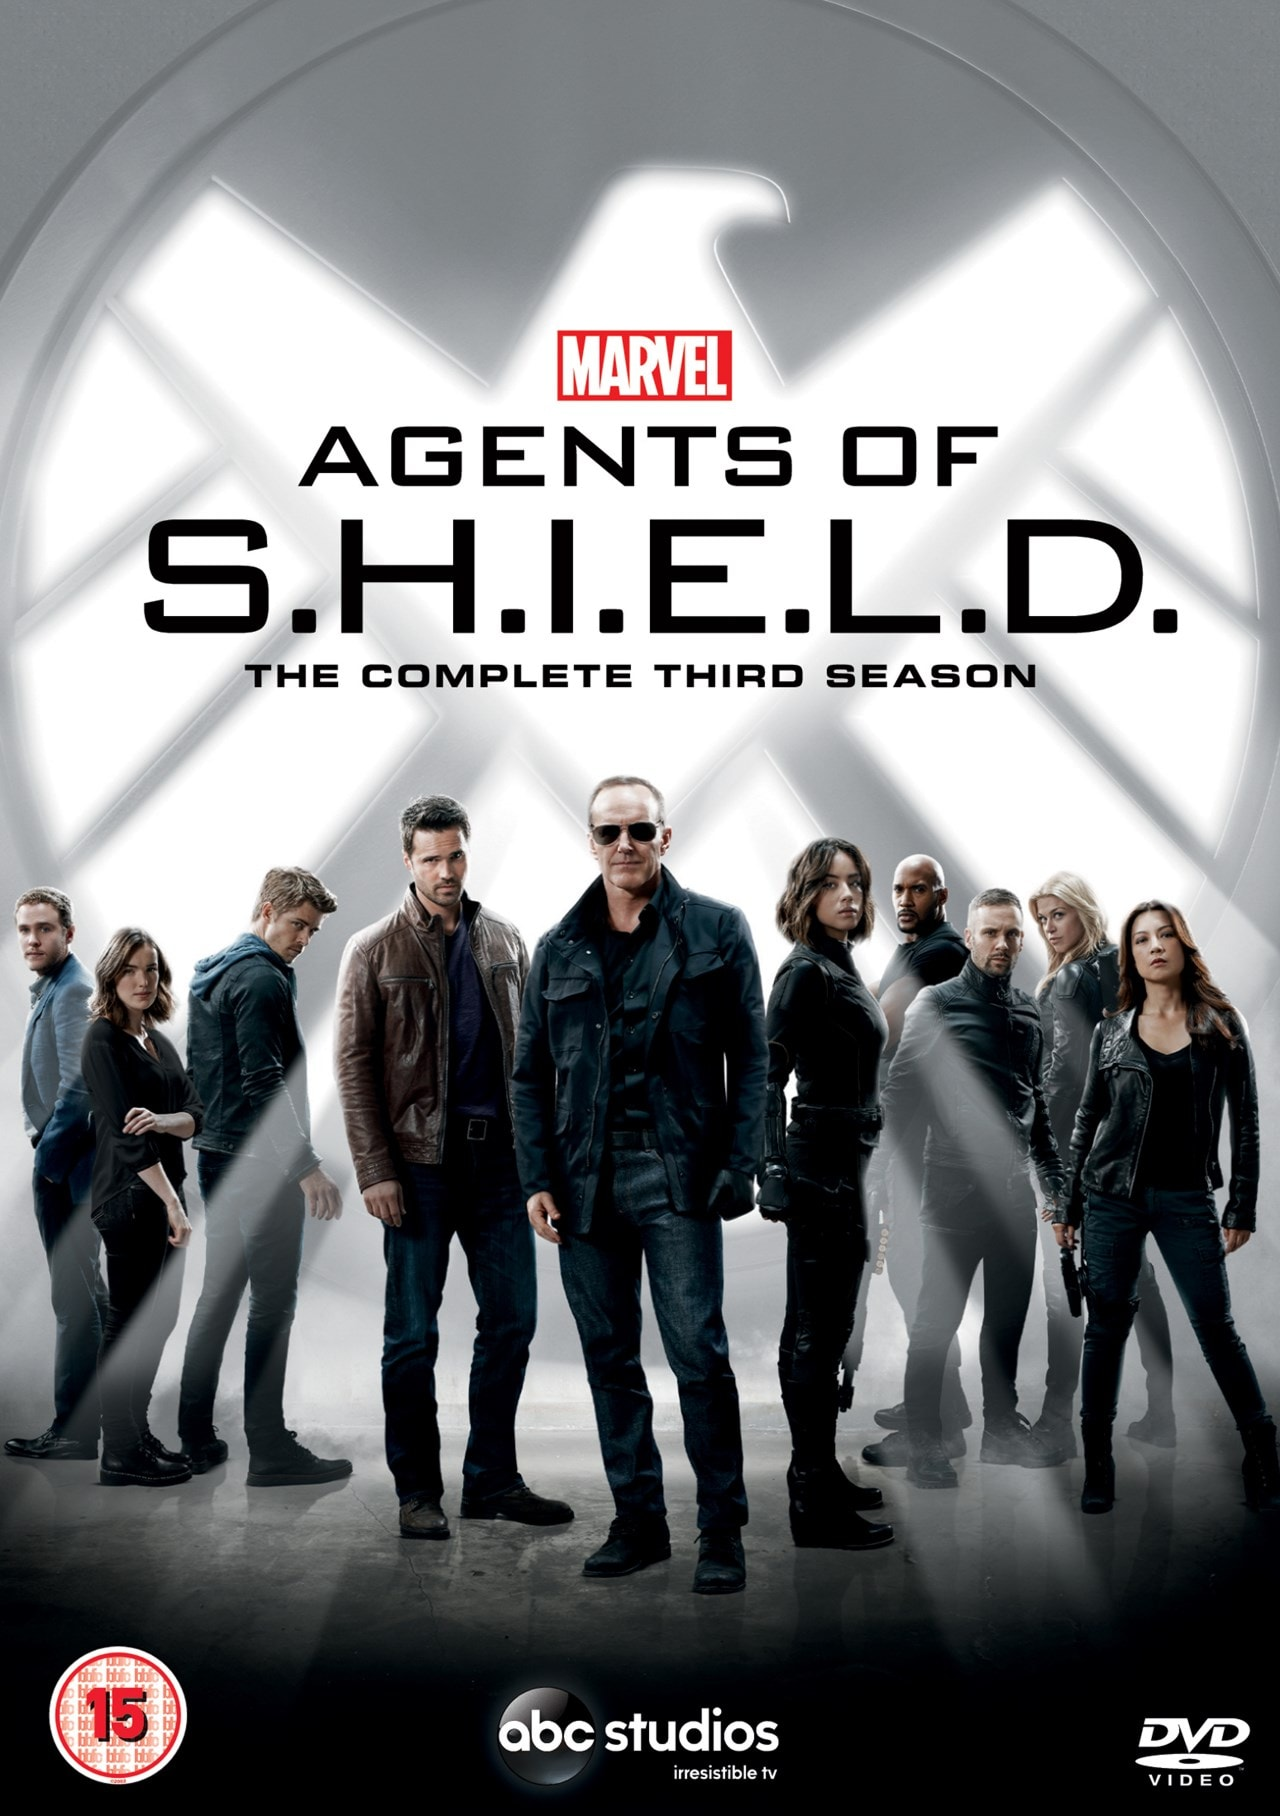 Marvel's Agents of S.H.I.E.L.D.: The Complete Third Season - 1